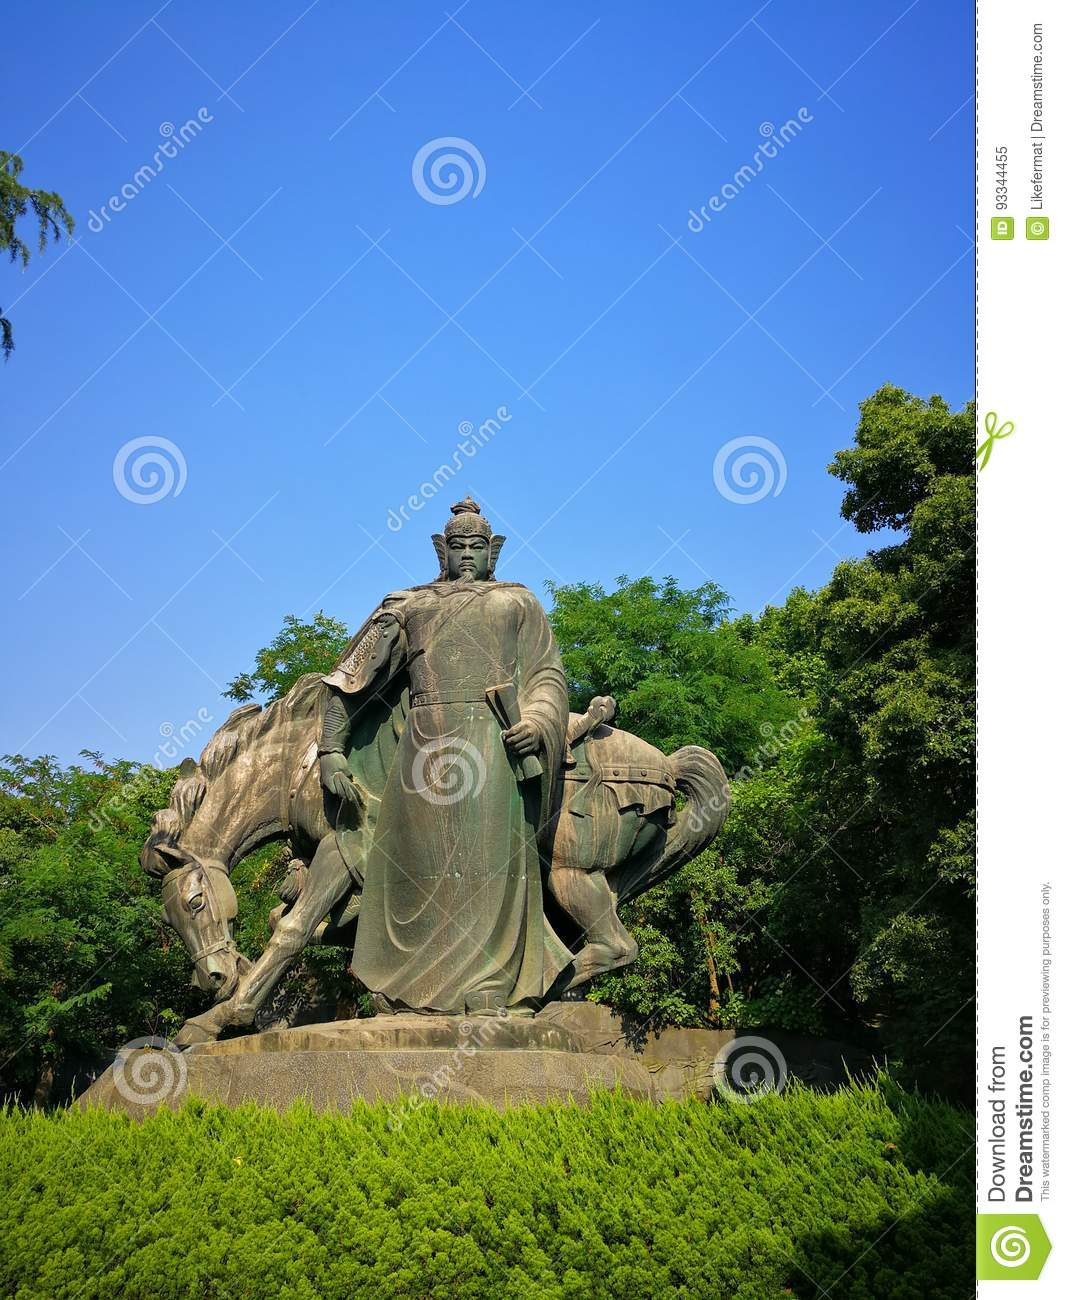 The sculpture of yue fei stock image  Image of ancient